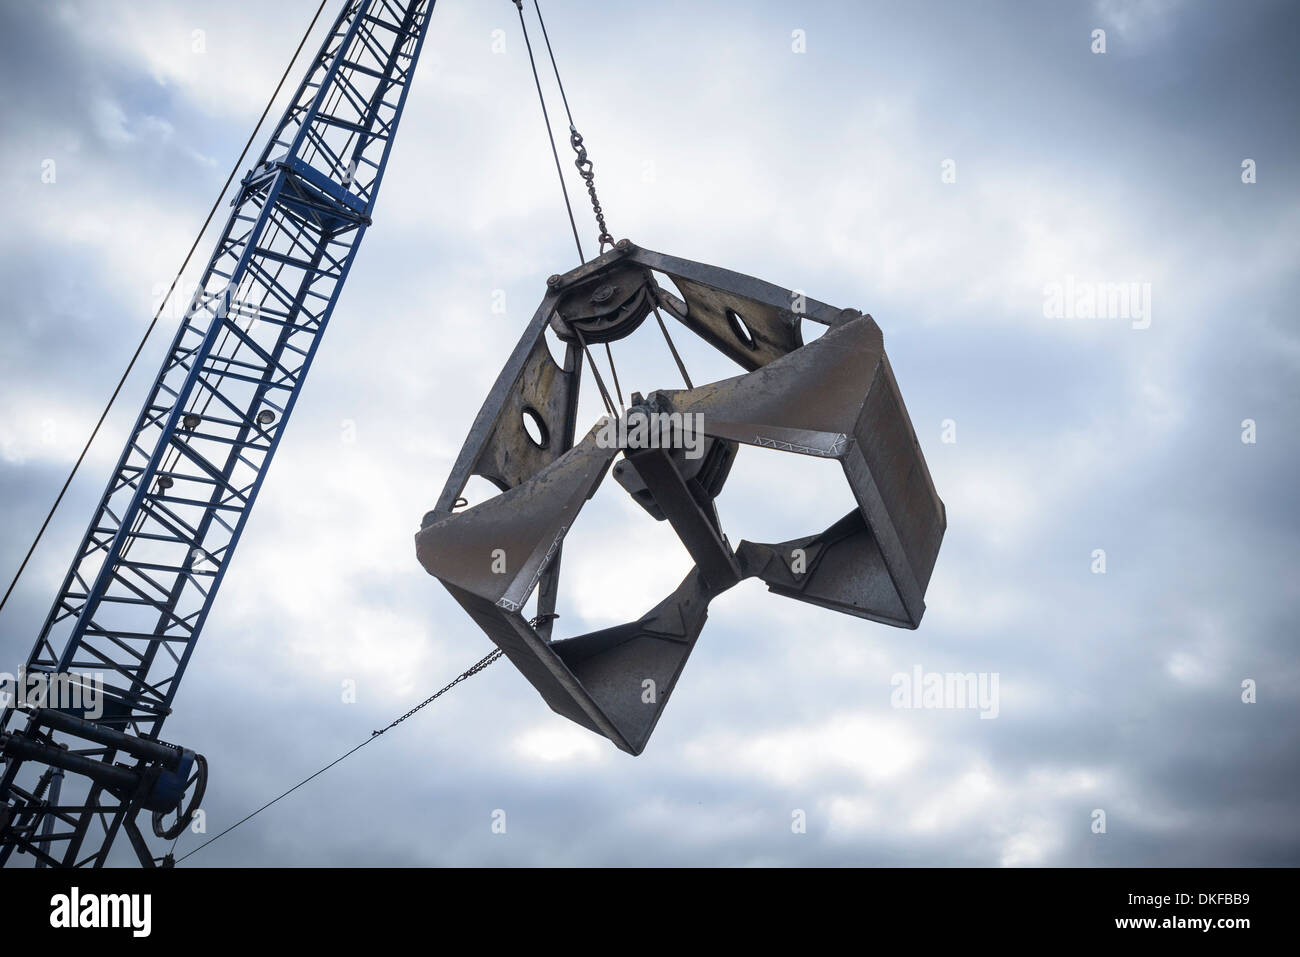 Low angle view of crane grab against cloudy sky - Stock Image